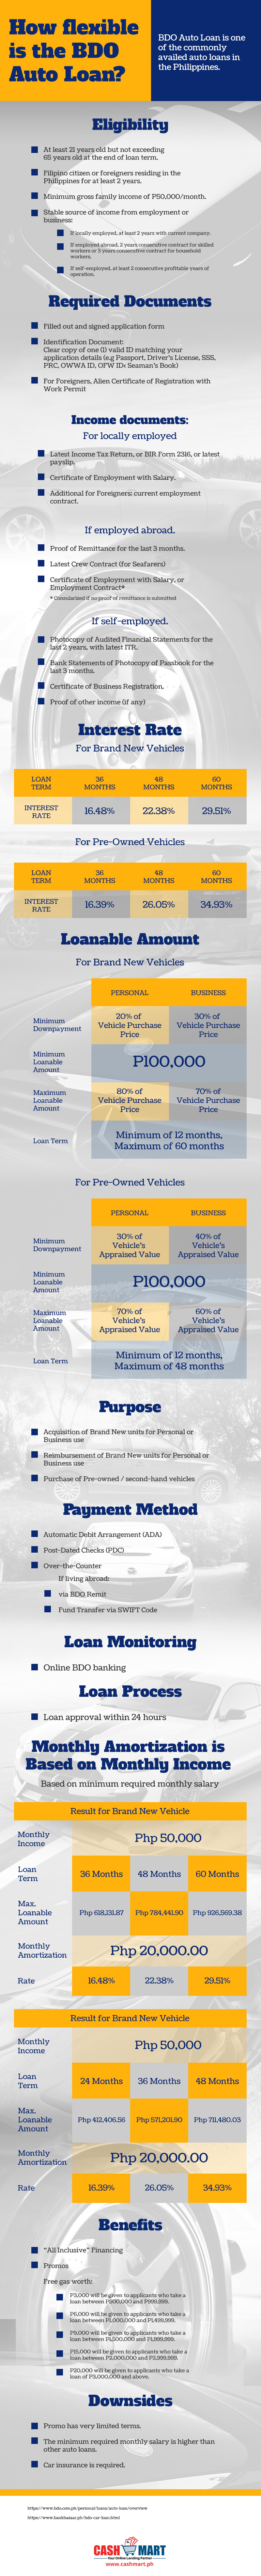 how-flexible-is-bdo-auto-loan